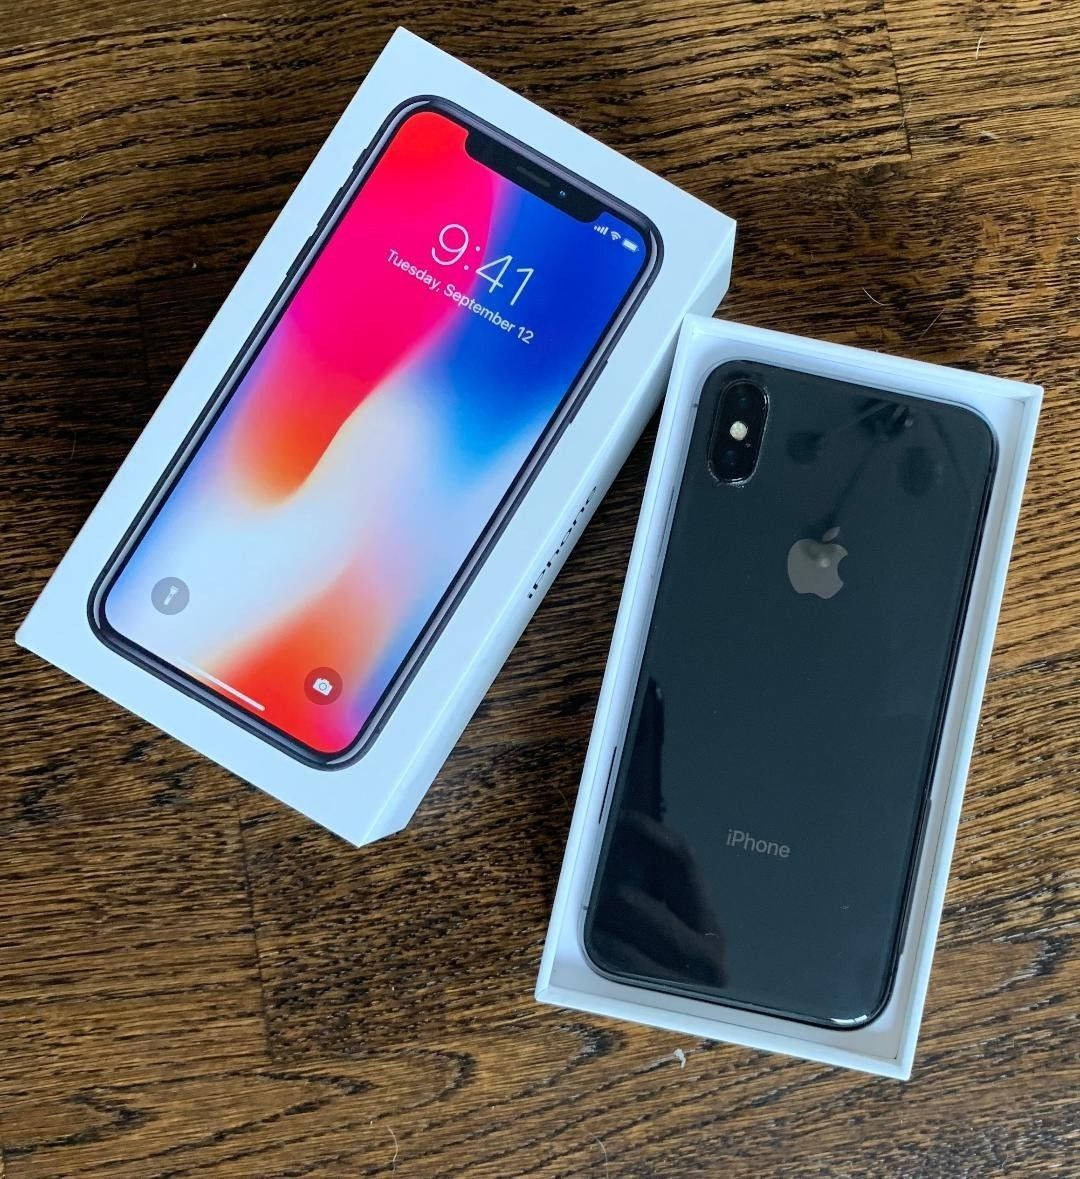 Apple Iphone X 256gb Space Gray Unlocked A1901 For Sale Free Local Classifieds Ads Quick Market Iphone Apple Iphone Apple Products